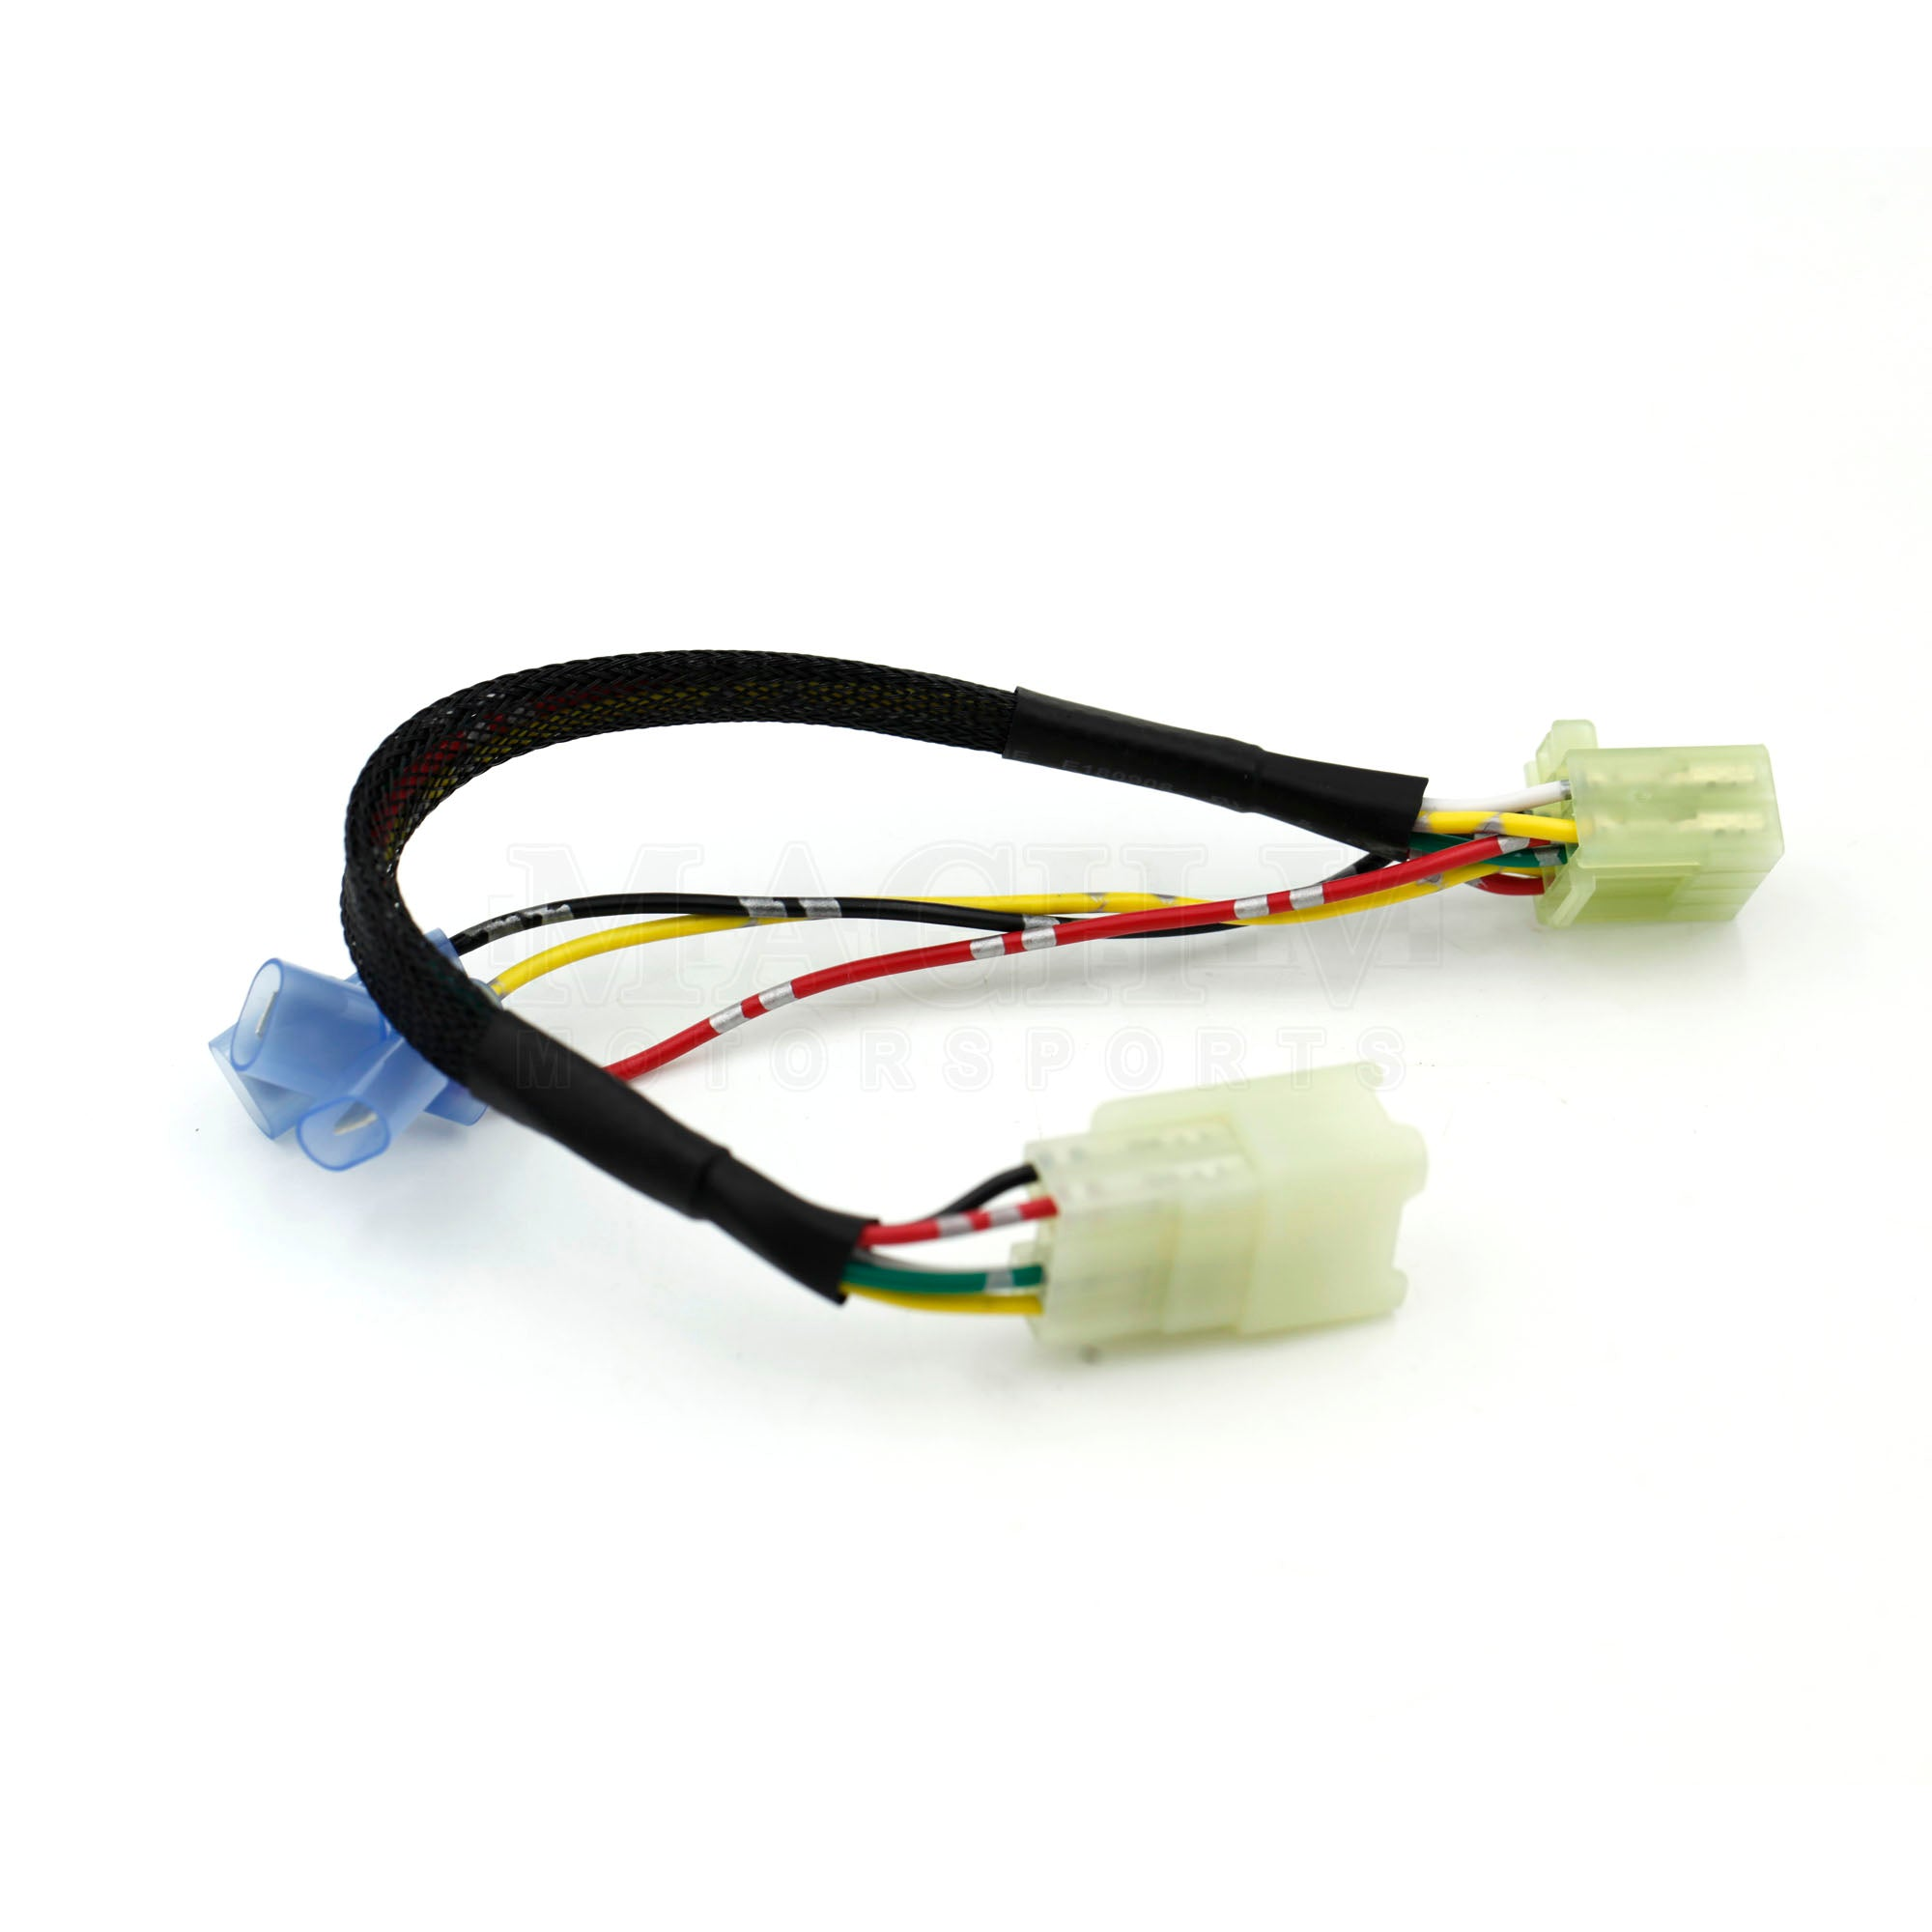 f1 wiring harness f1 style rear brake lamp wiring harness 2011 subaru wrx sti  f1 style rear brake lamp wiring harness